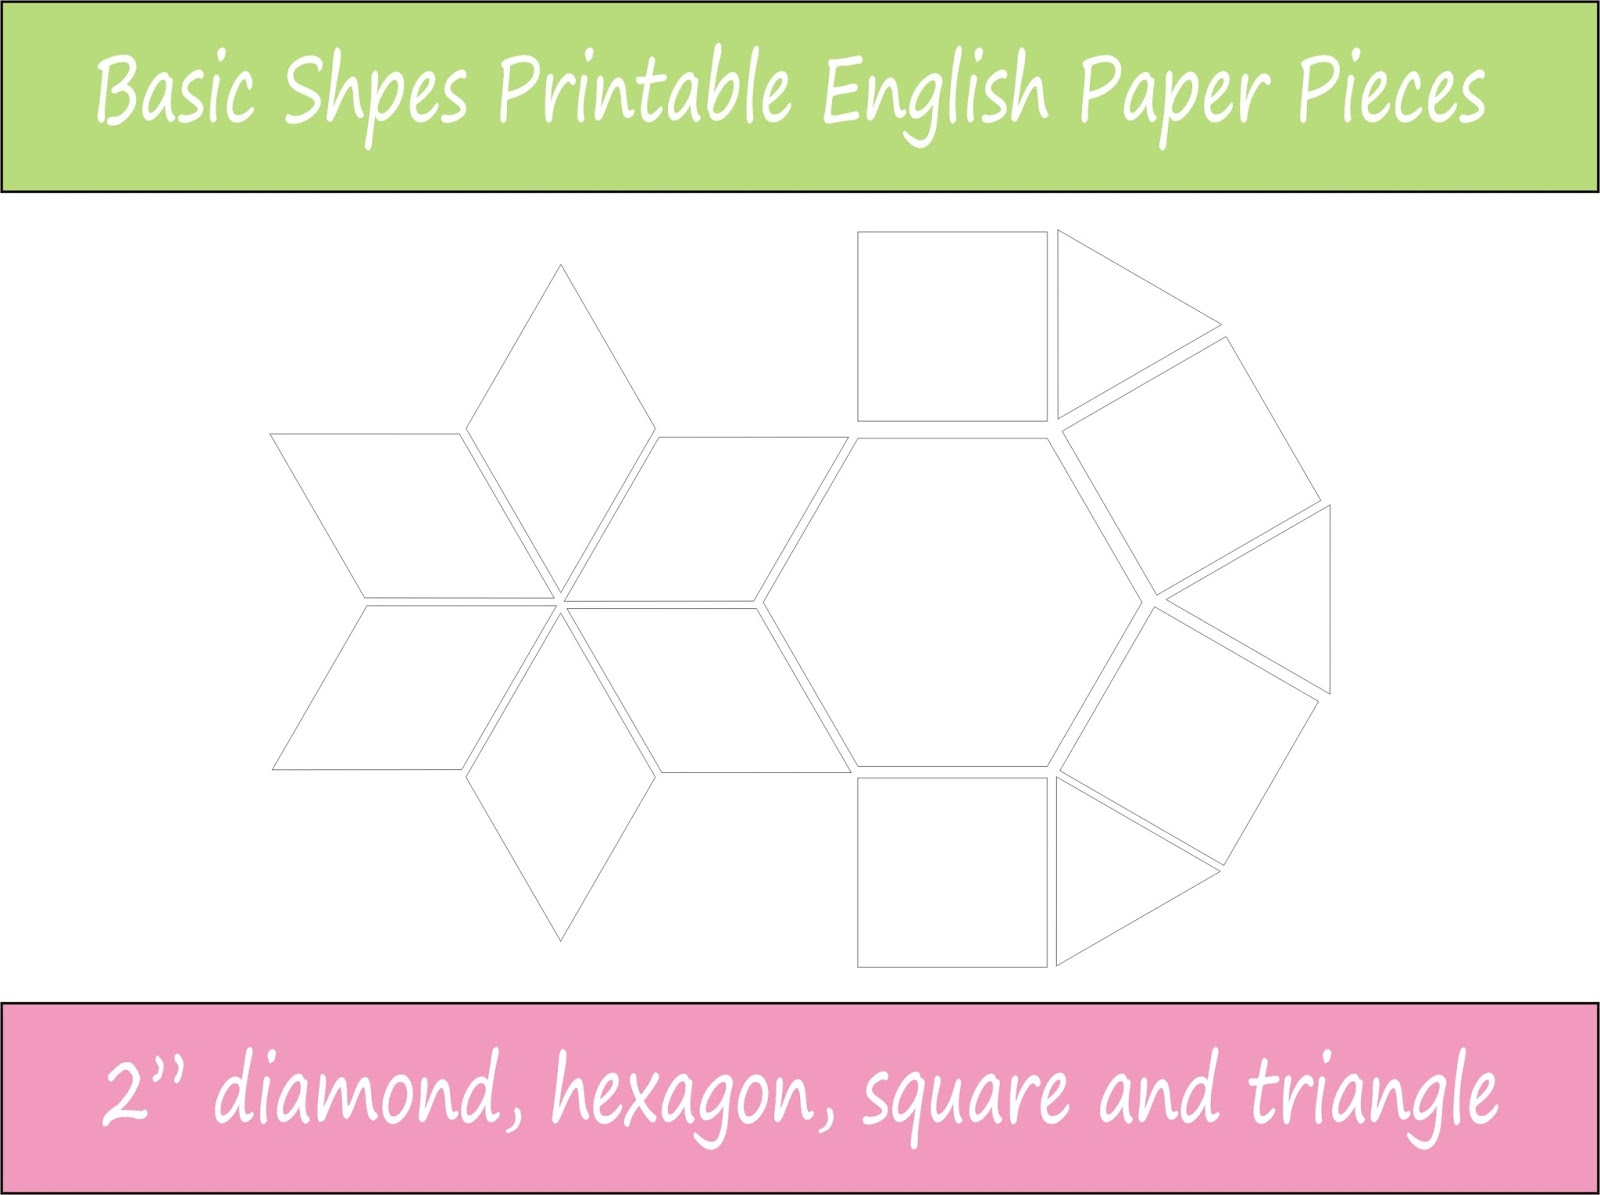 Introducing My Downloadable EPP Basic Shapes Pack